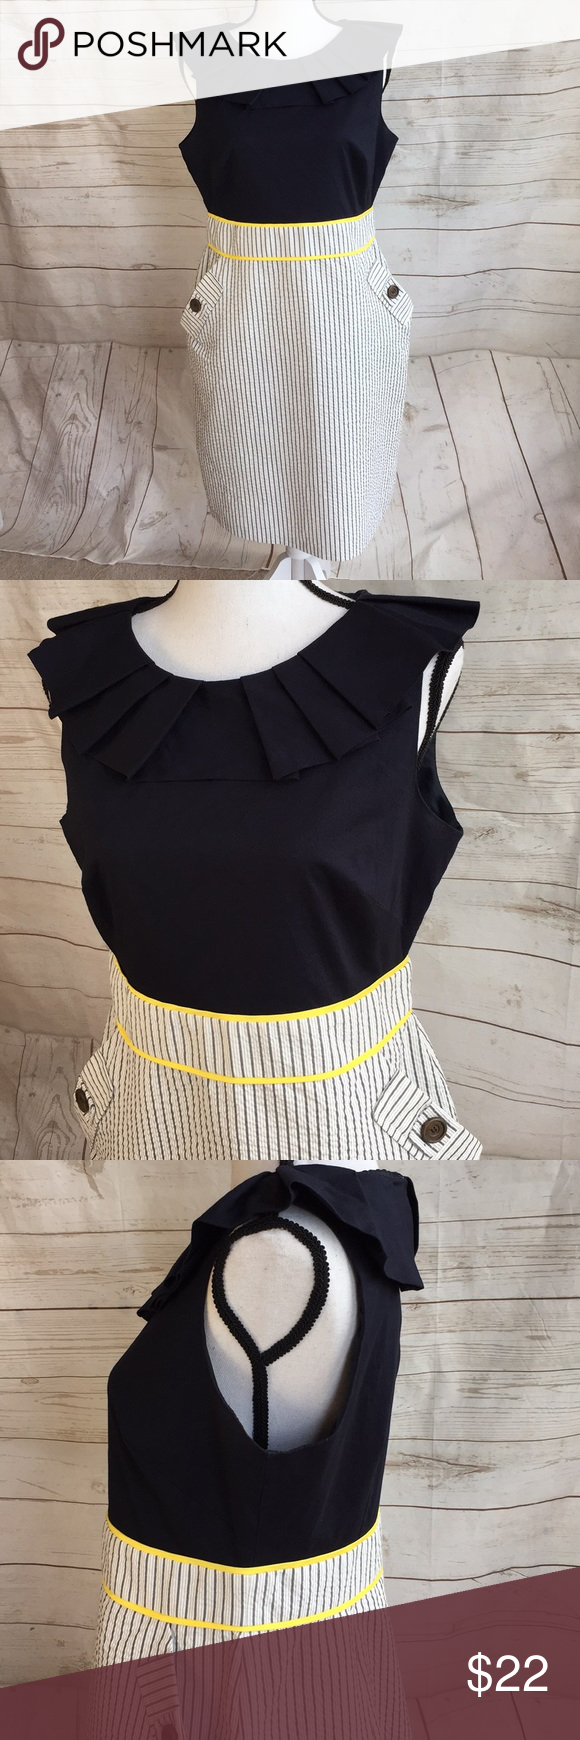 fa9de3af3c AGB navy blue and striped fitted dress 14 AGB fitted dress with navy blue  bodice with yellow trim at the waist and a white and blue striped skirt